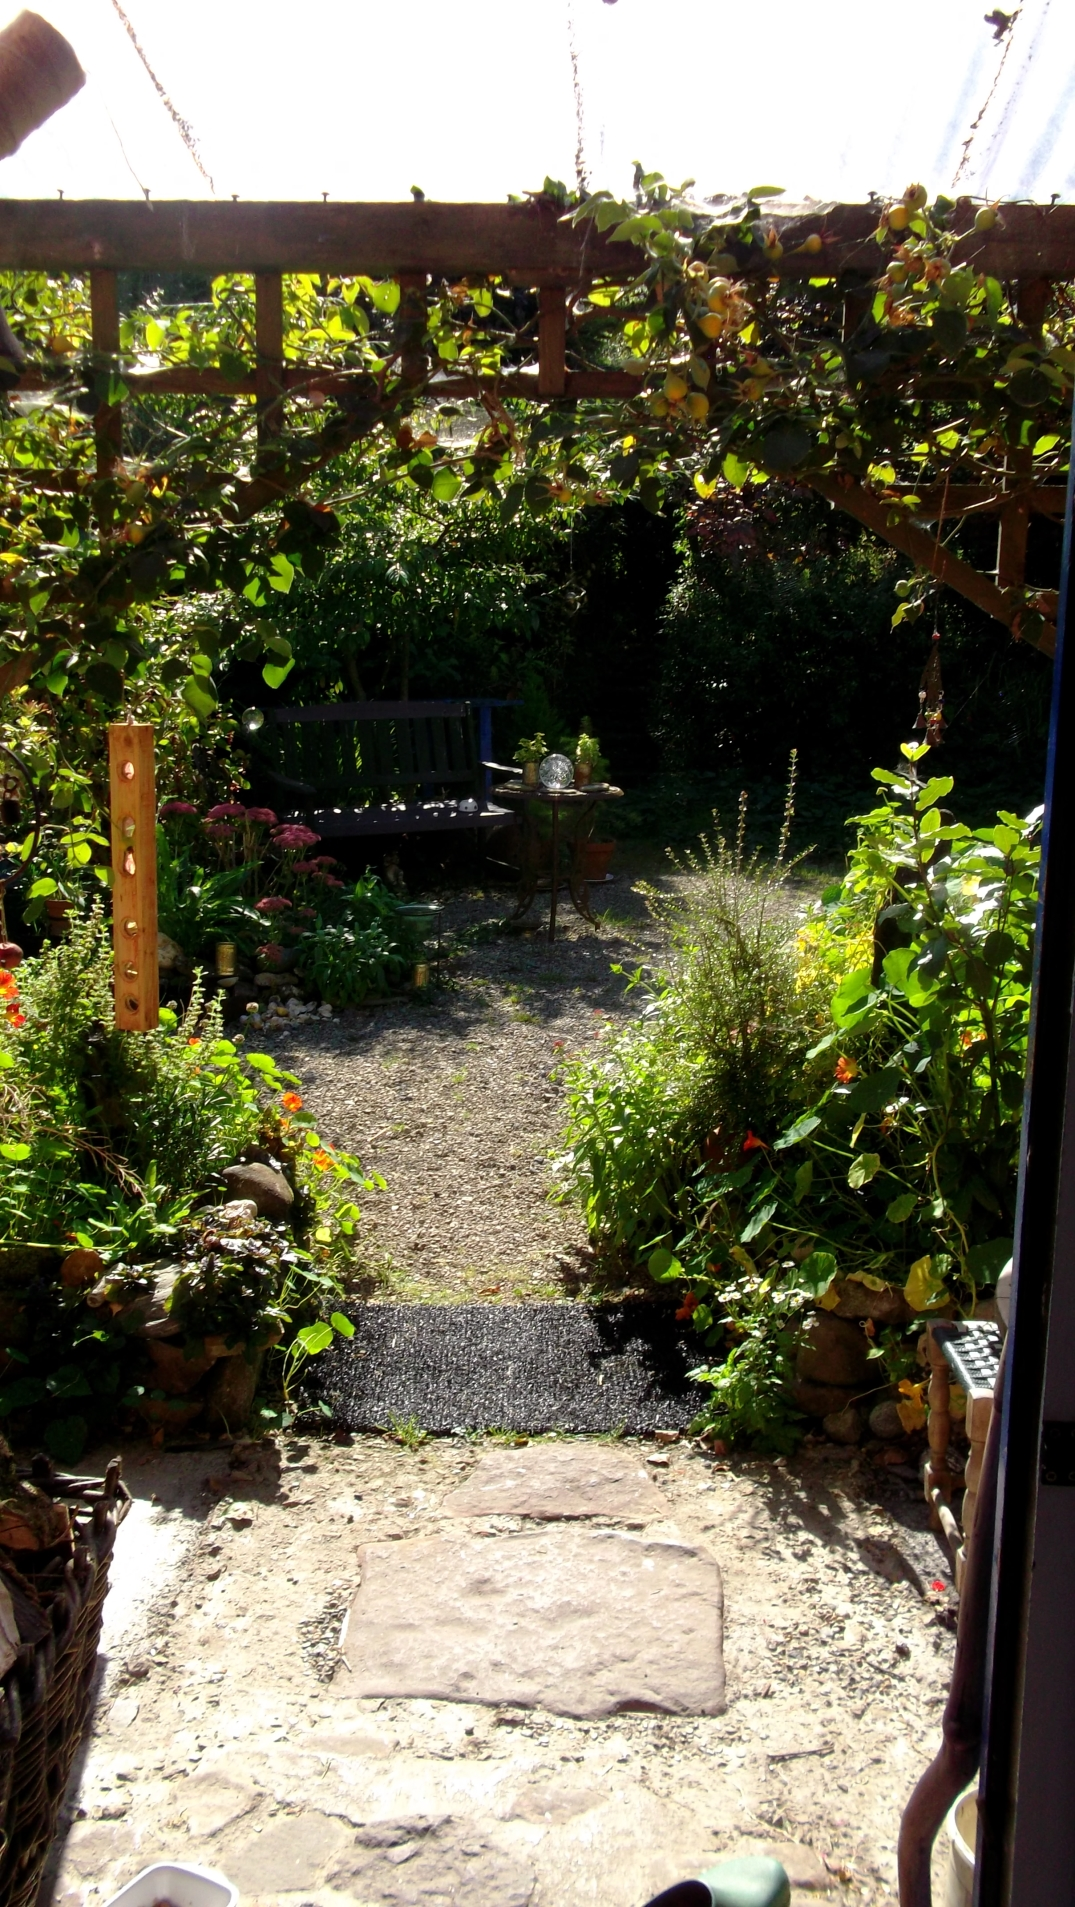 Autumn permaculture at bealtainecottage.com 020